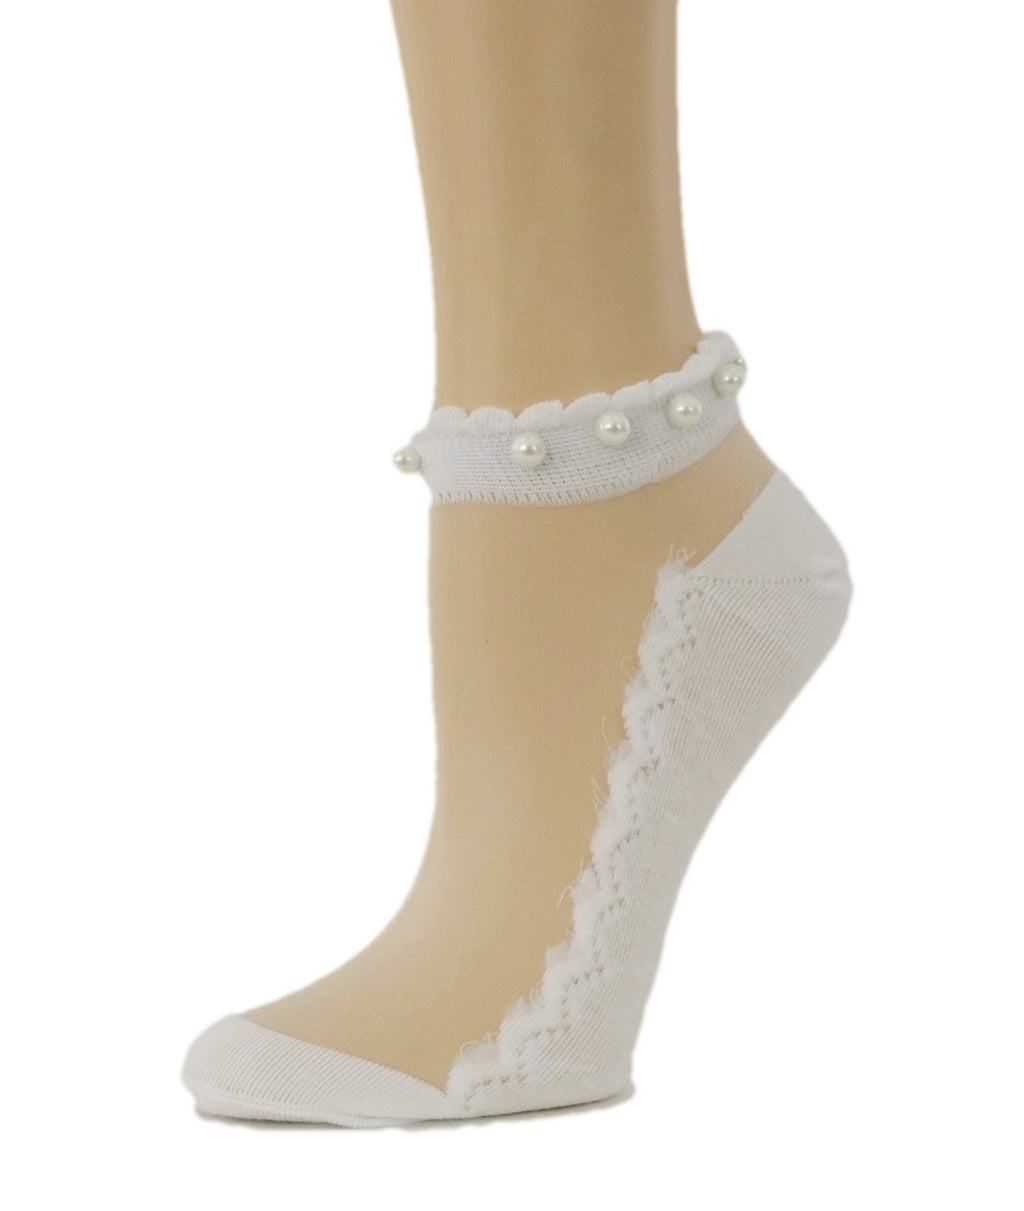 Pearled White Ankle Sheer Socks - Global Trendz Fashion®